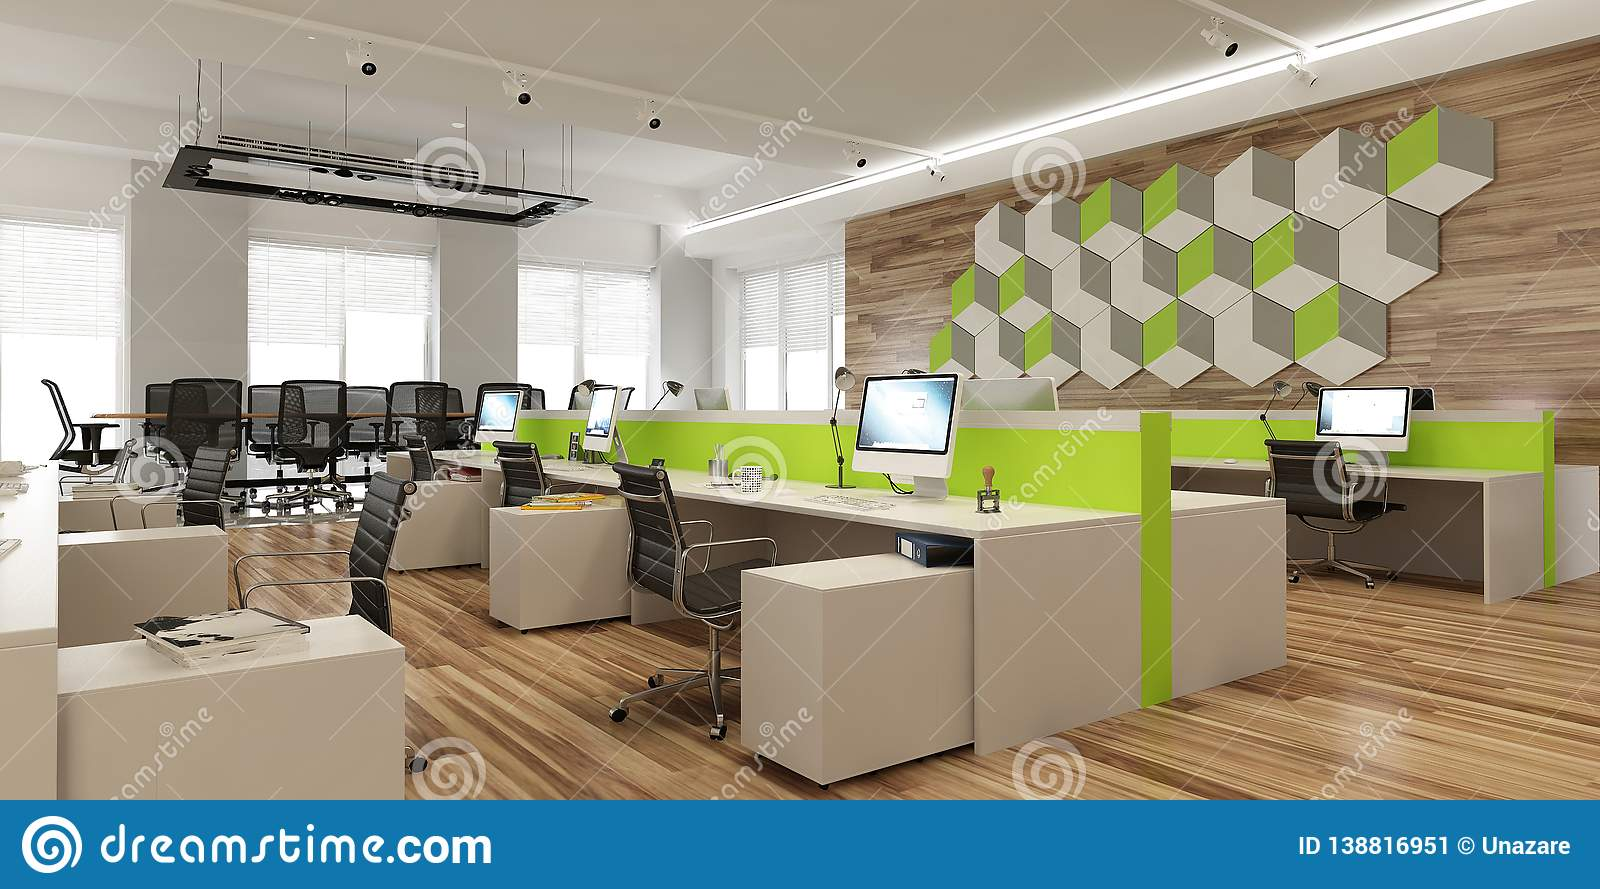 Modern Office Space Interior In Light Colors With Wooden And Bright Accents.